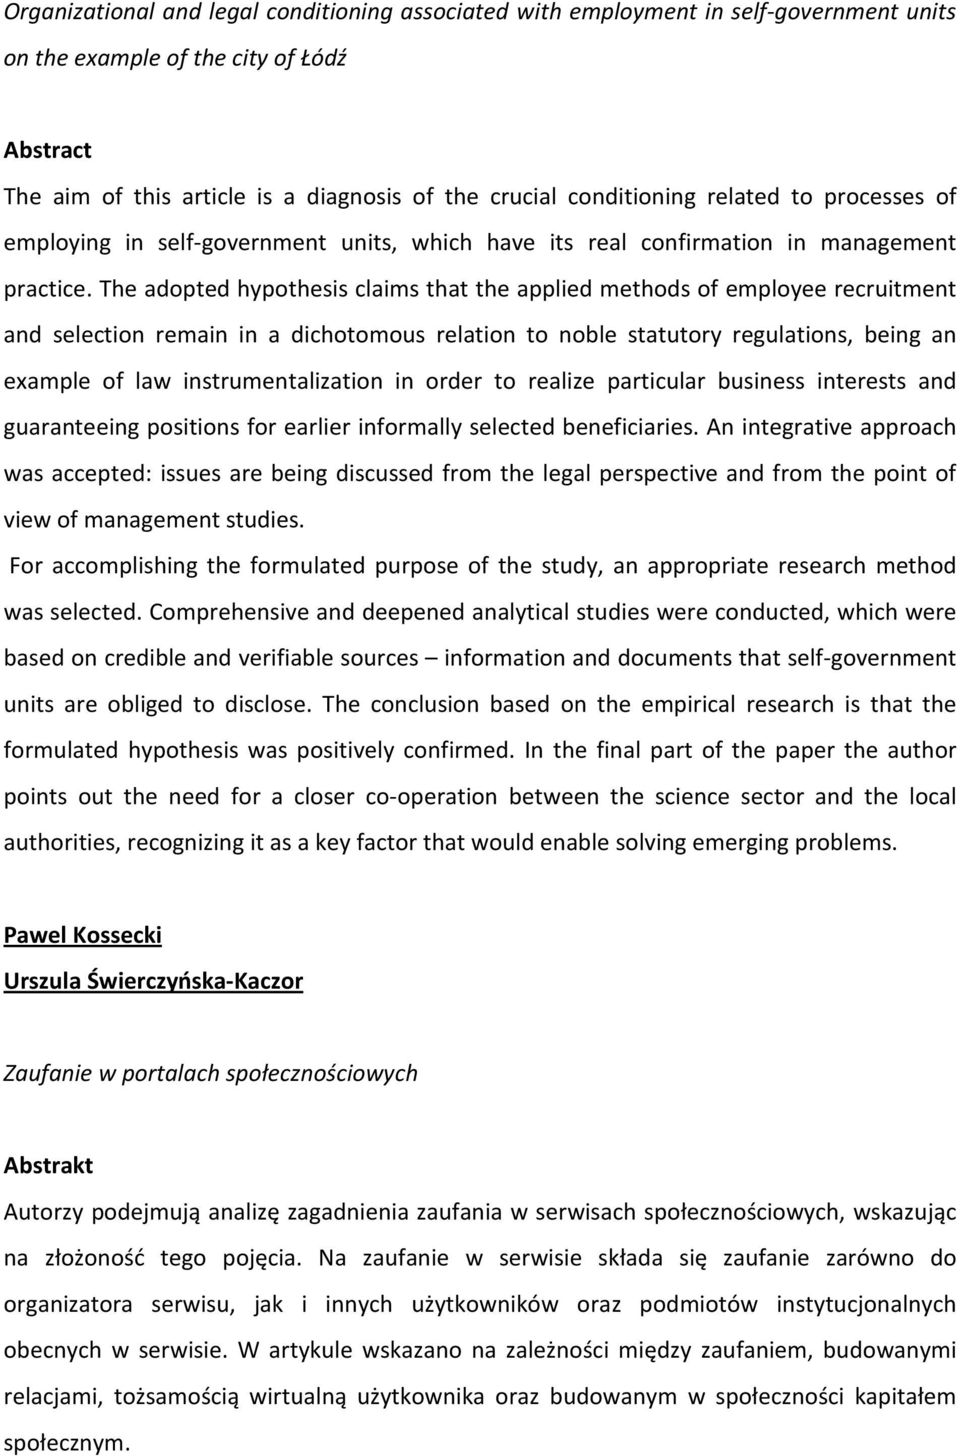 The adopted hypothesis claims that the applied methods of employee recruitment and selection remain in a dichotomous relation to noble statutory regulations, being an example of law